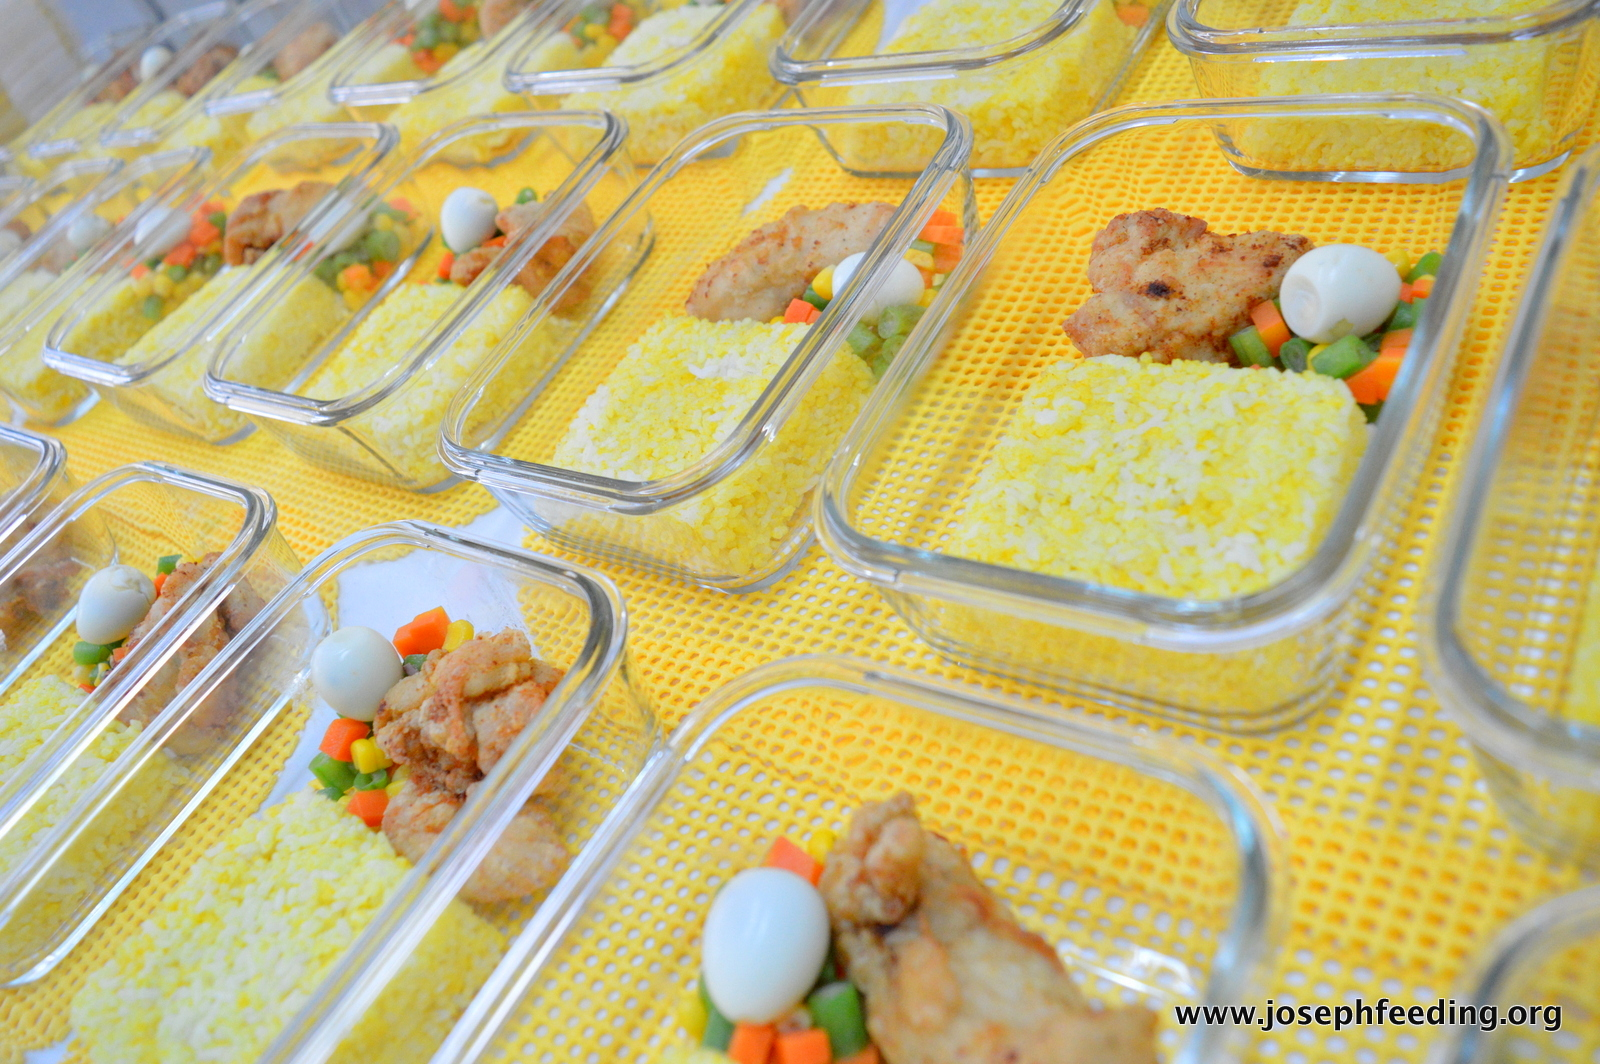 Special Meal for Palatiw Elem. School Students